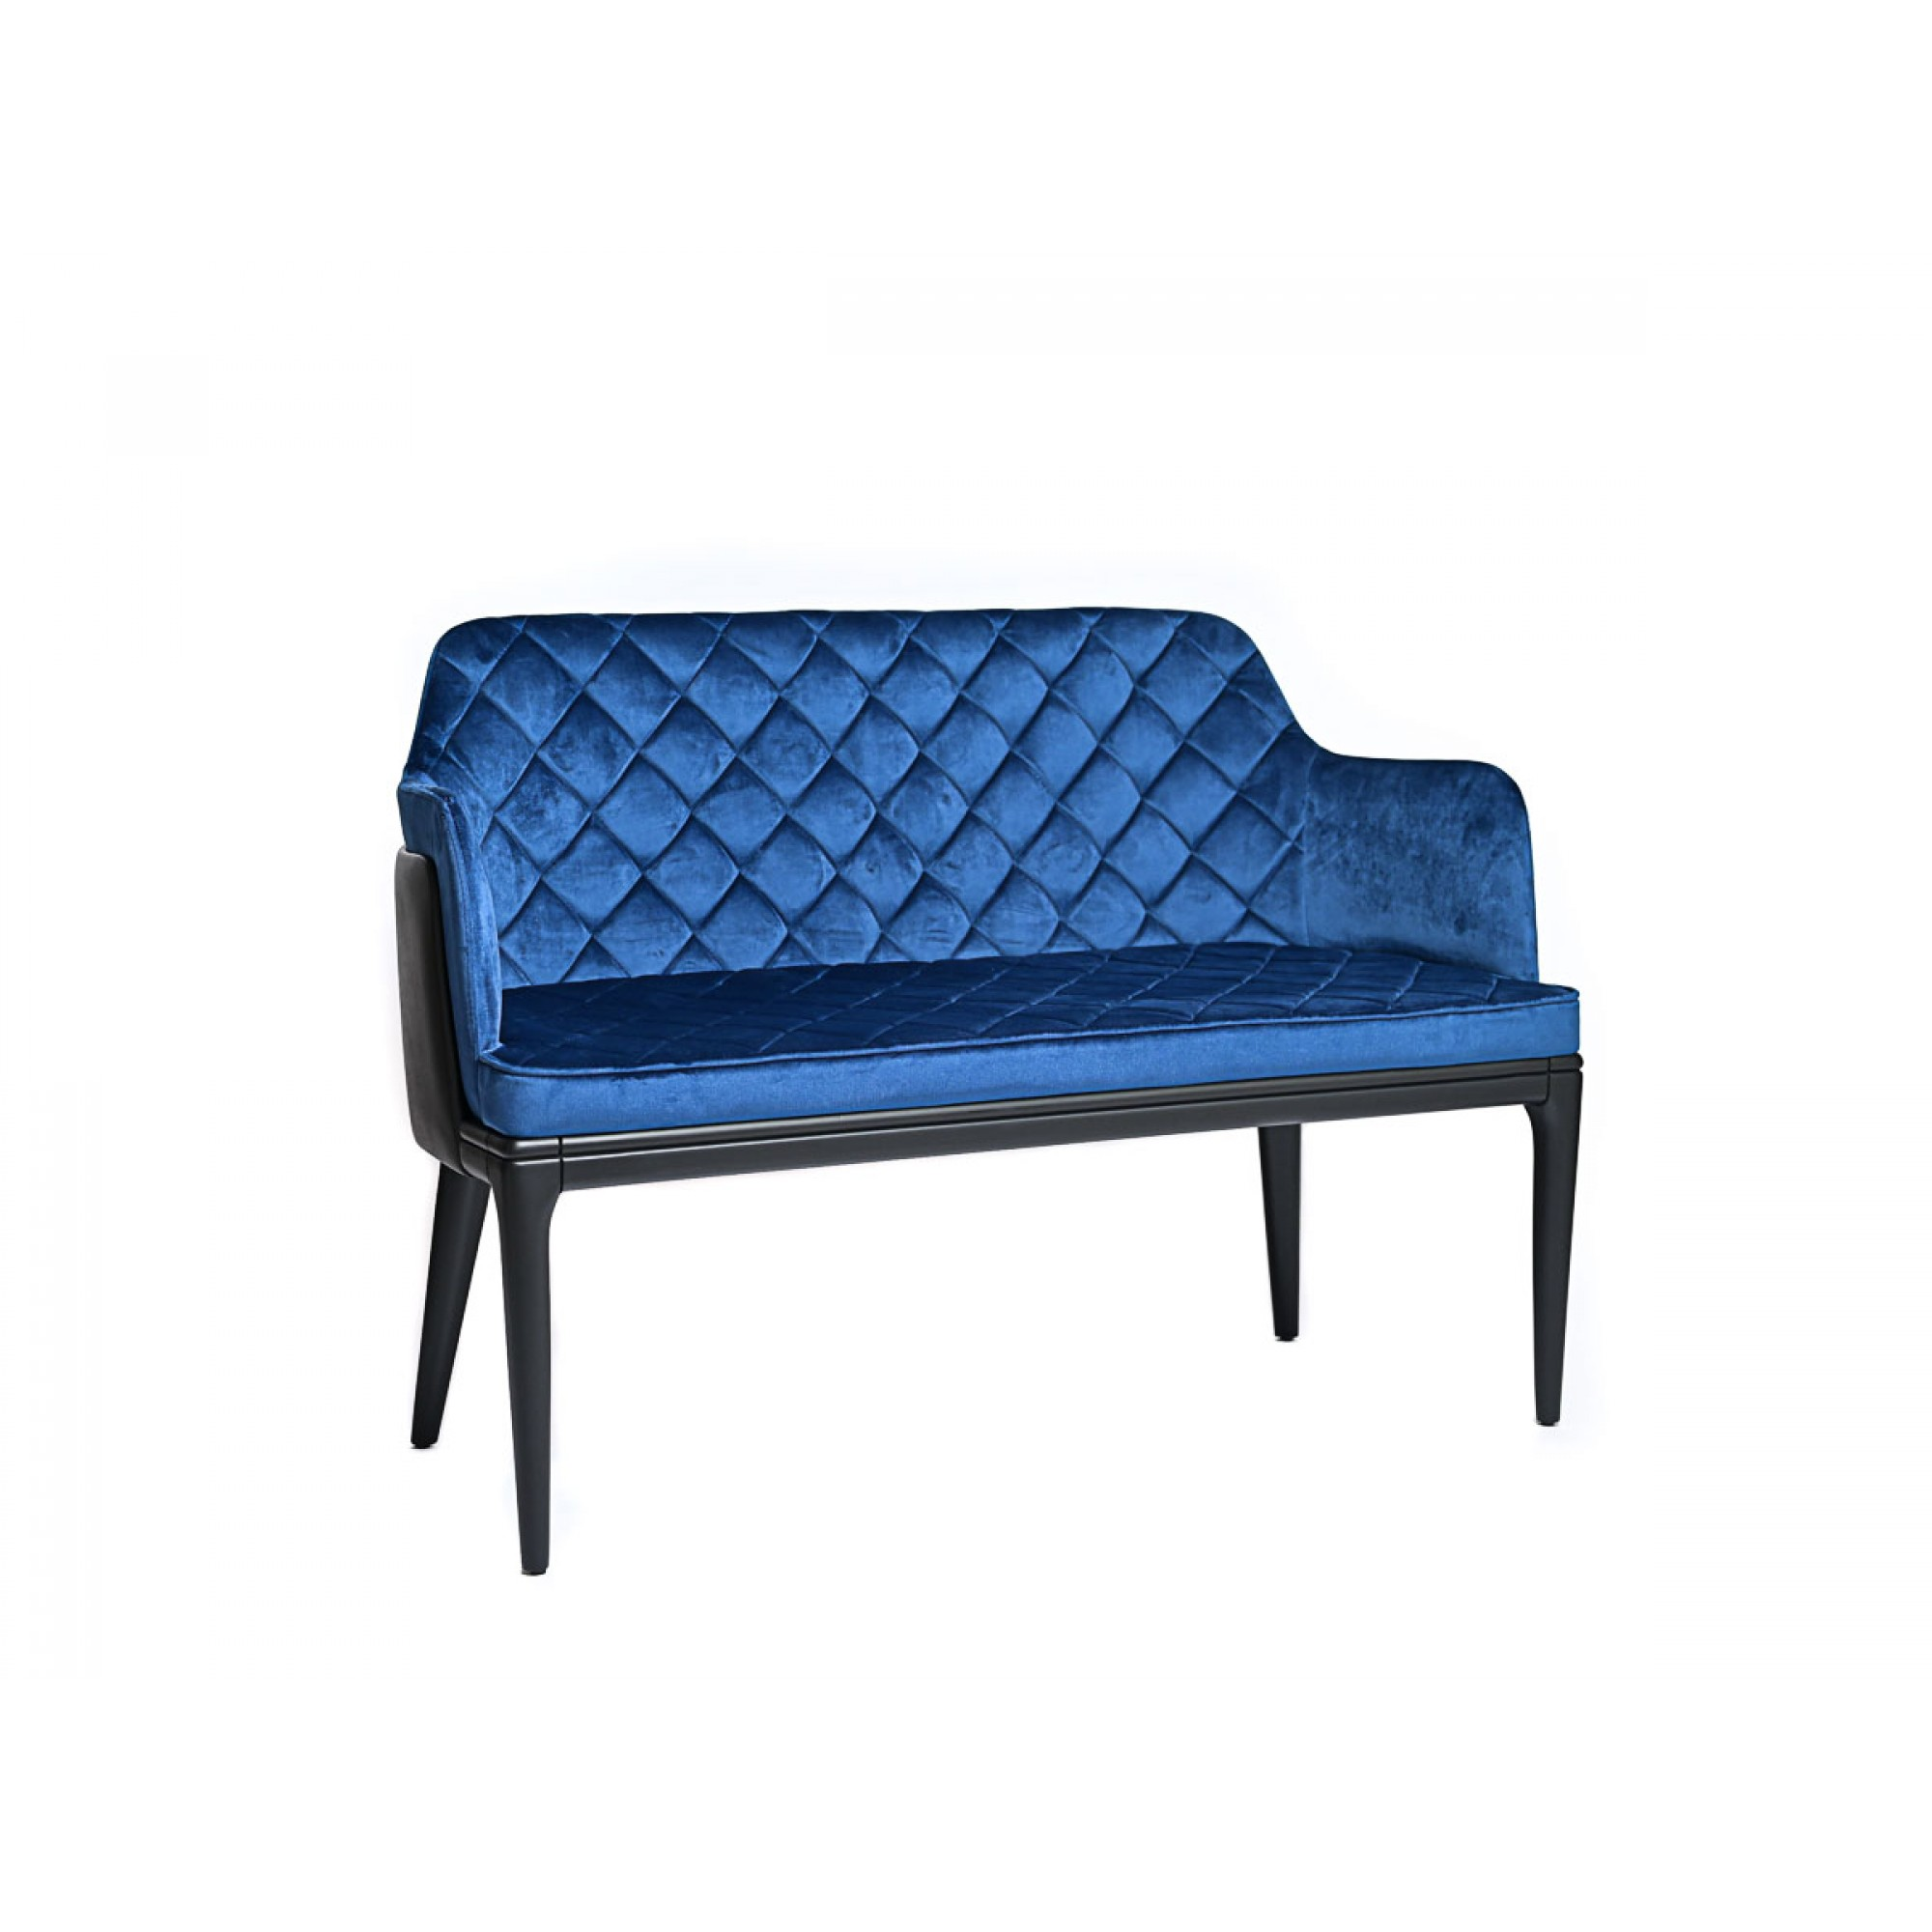 Bench - sofa with black wood legs, fully upholstered in royal blue velvet and black eco-leather - DOUBLE BENTLEY